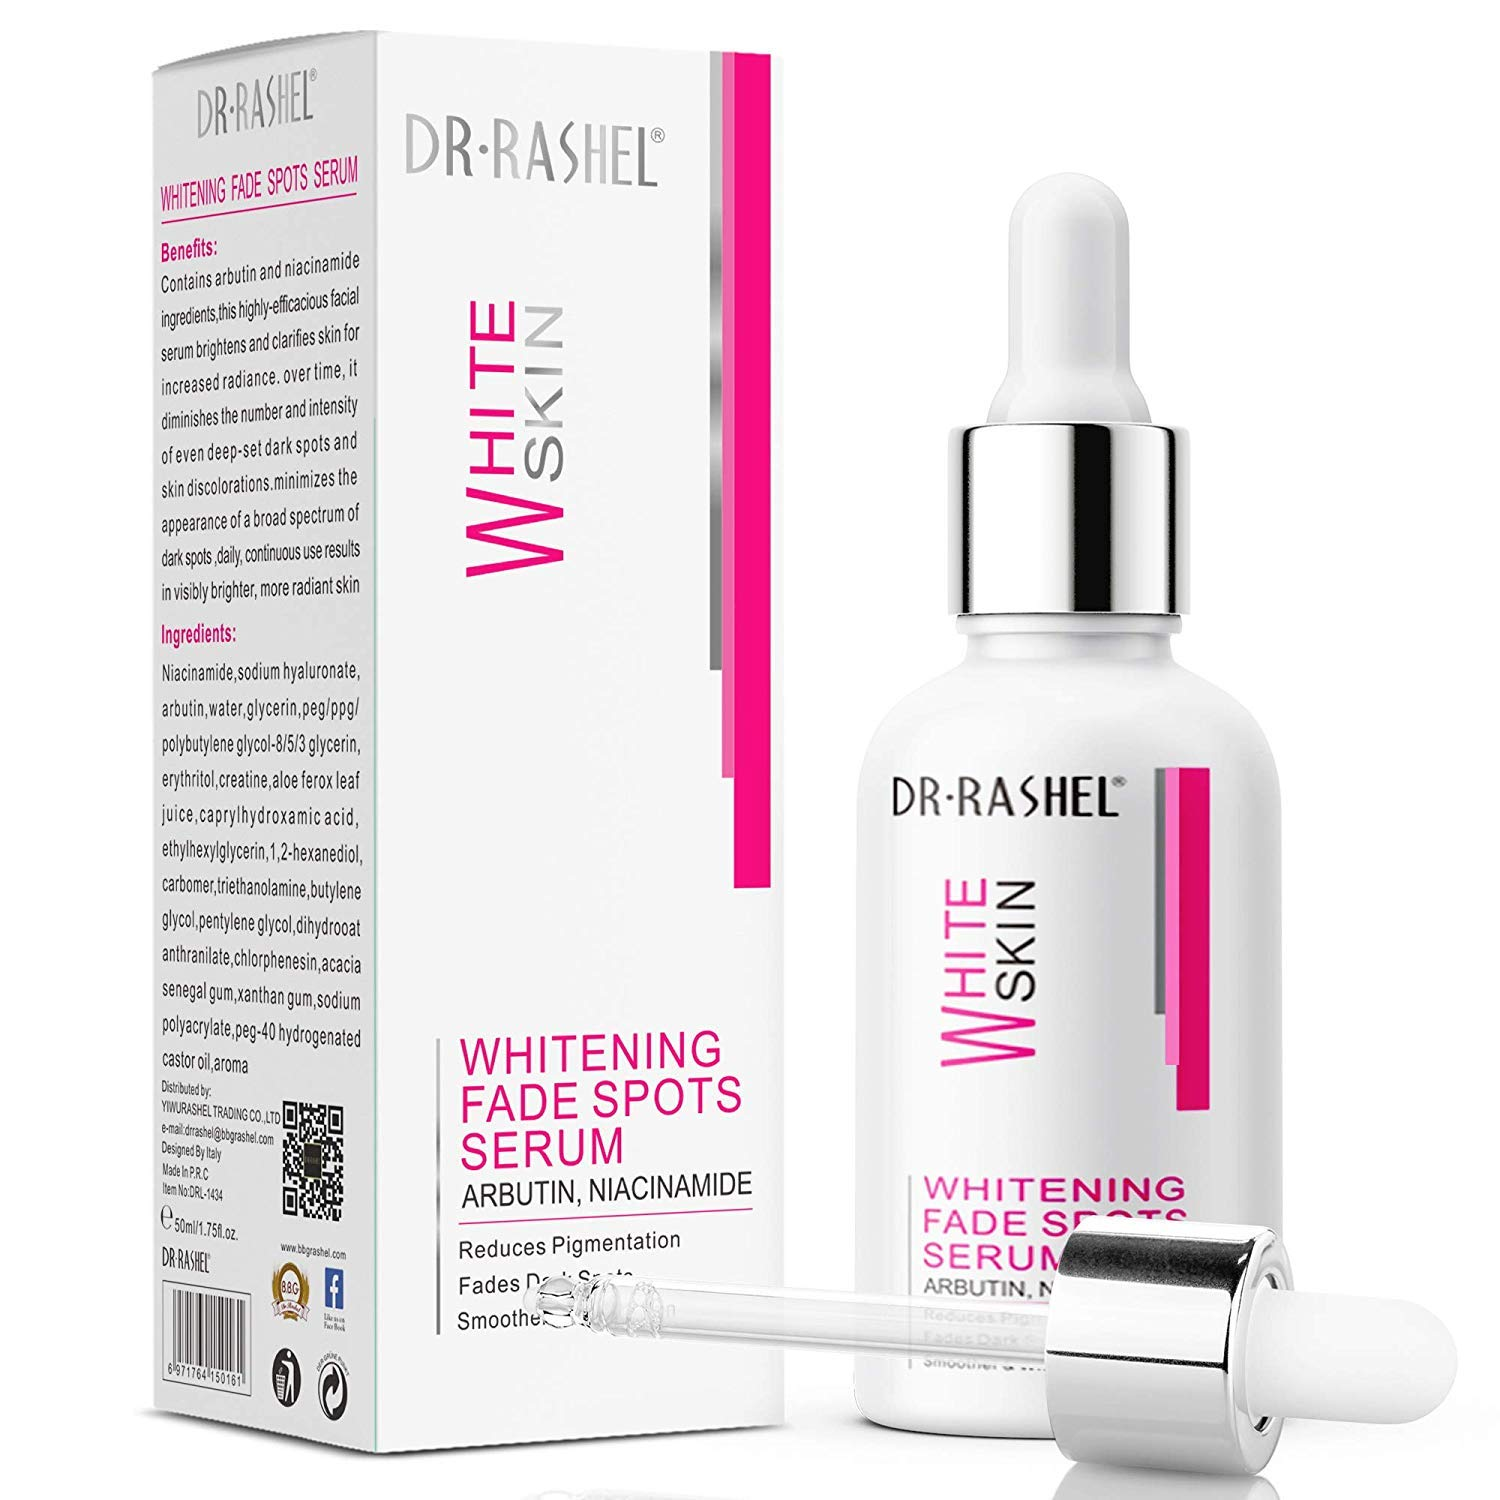 Dark Spot Corrector Remover for Face and Body, Reduces & Fades Spots- Formulated with Arbutin & Niacinamide (50 ml)